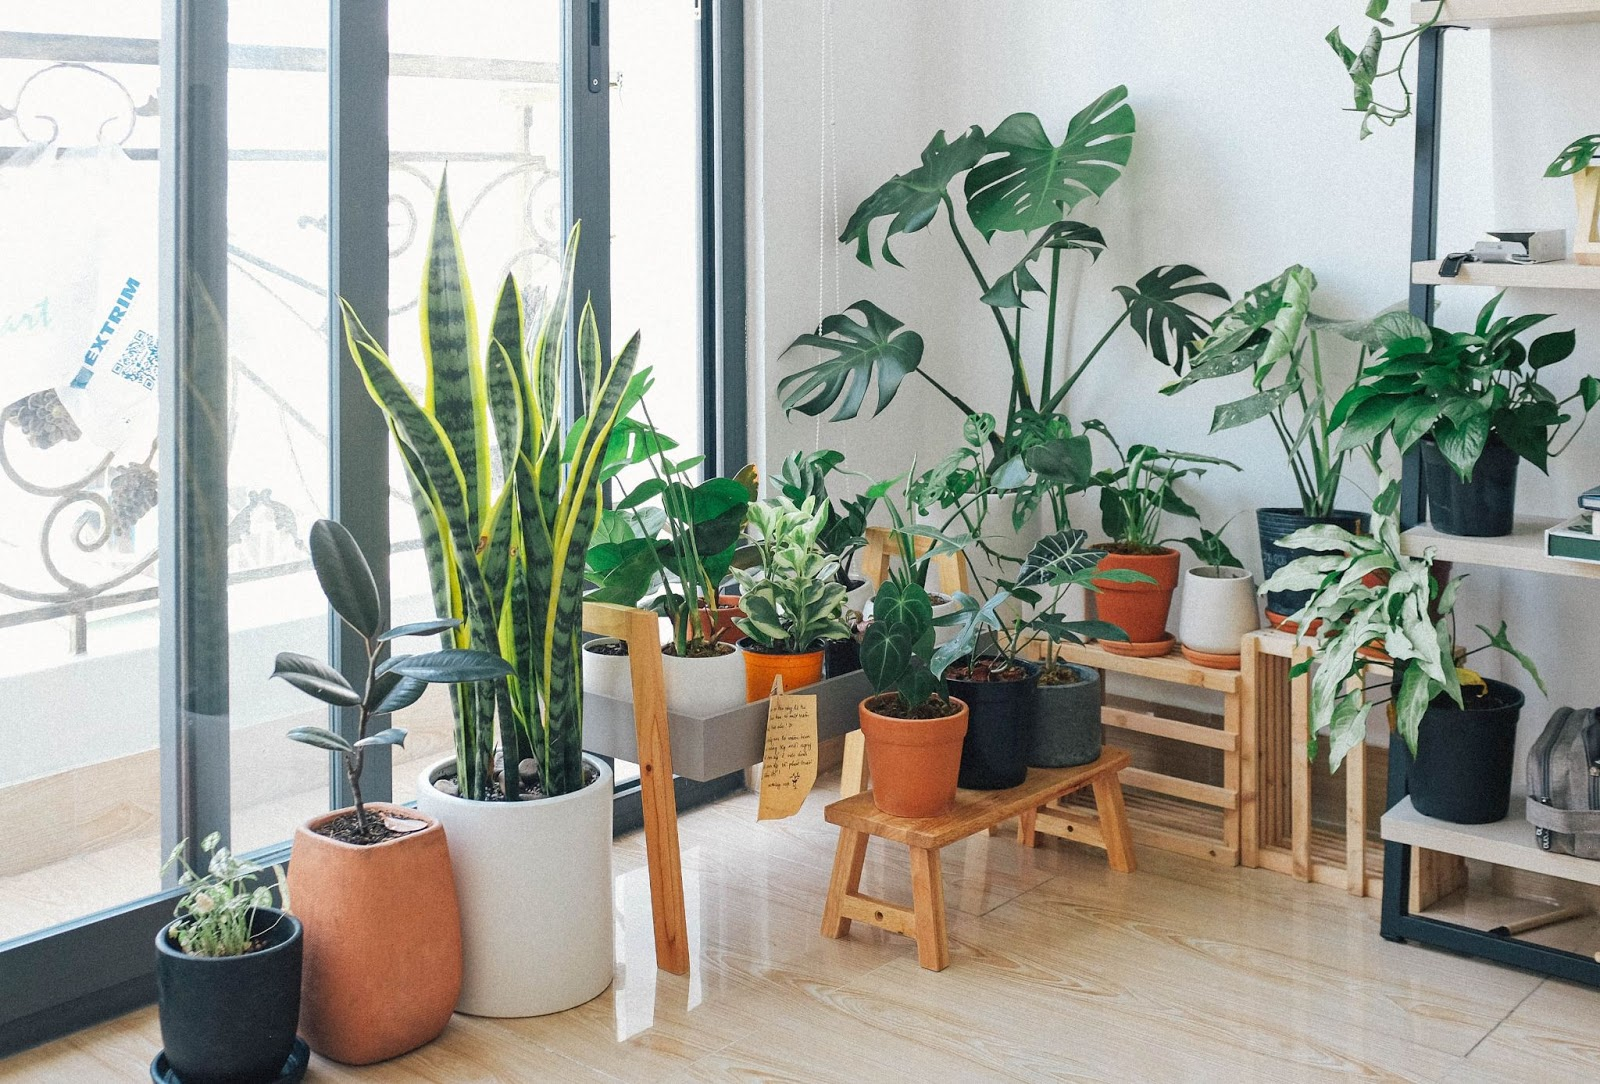 Dozens of potted plants against floor to ceiling windows.